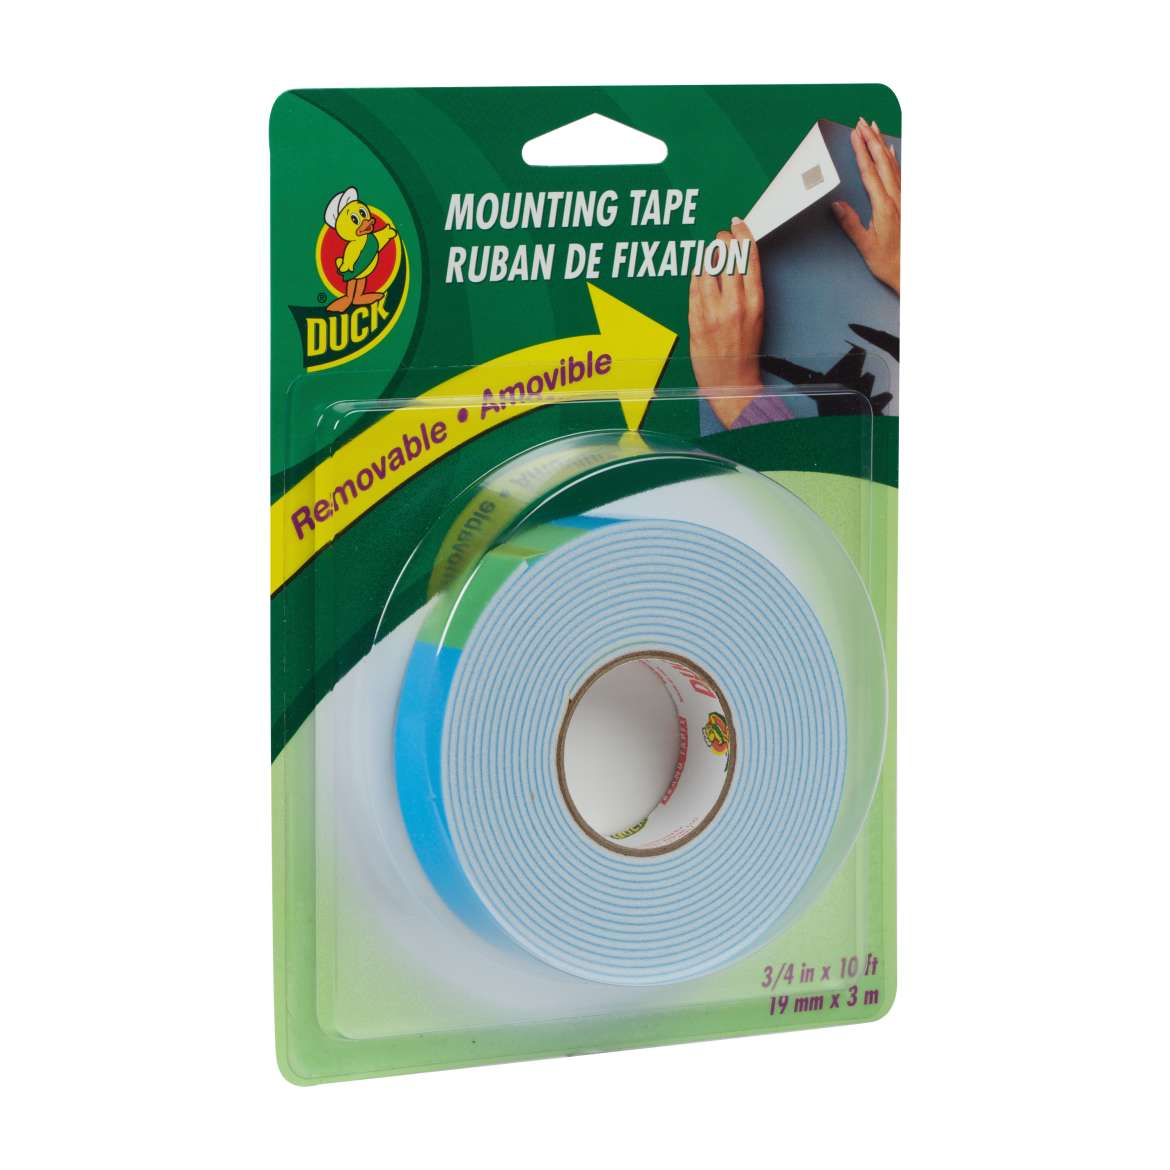 Duck® Brand Removable Mounting Tape - White, .75 in. x 10 ft. Image